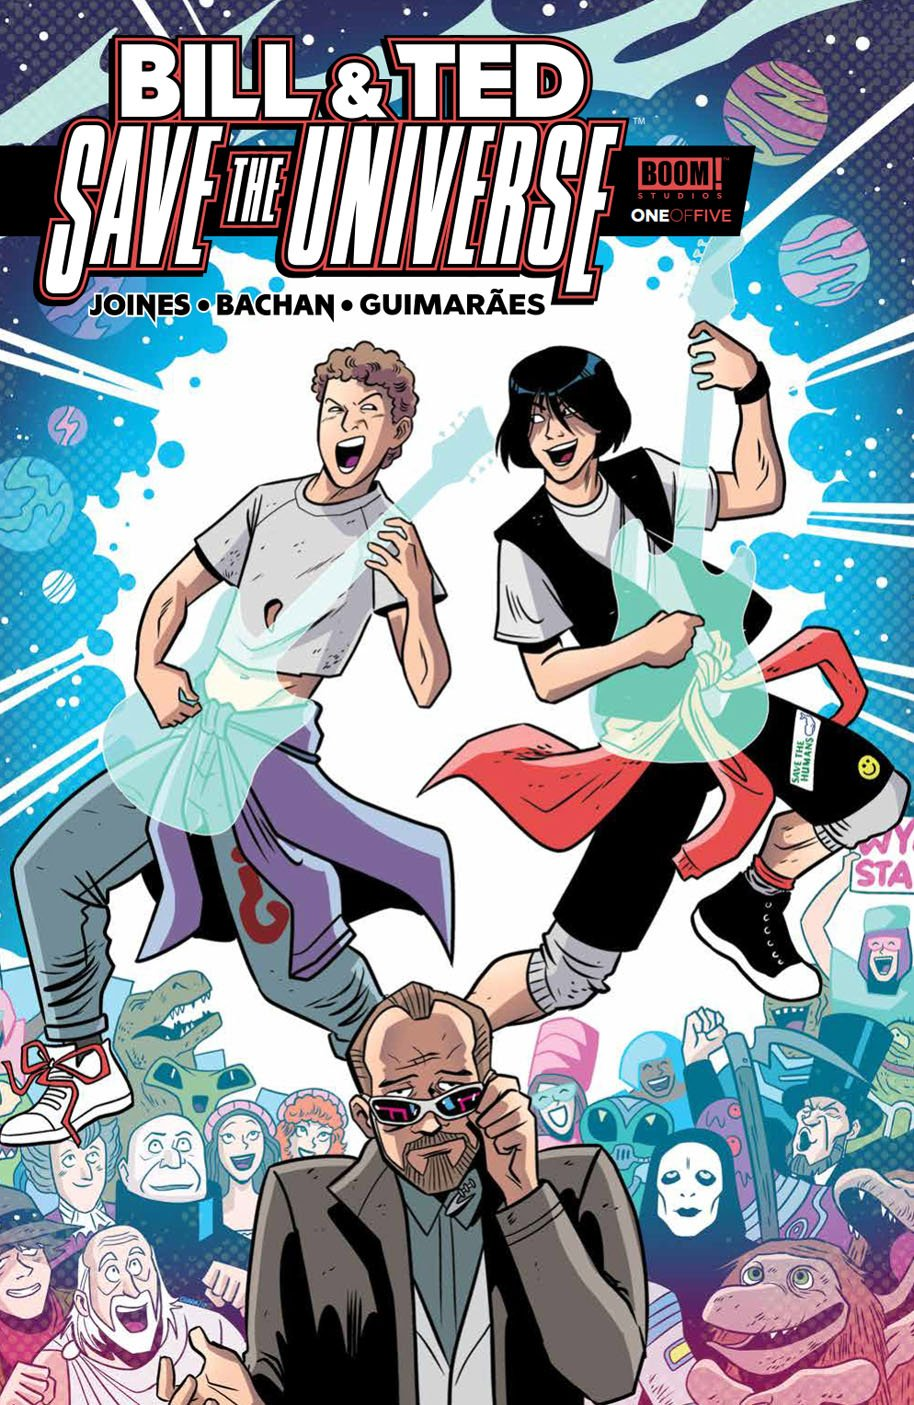 Bill & Ted Save the Universe 1 cover